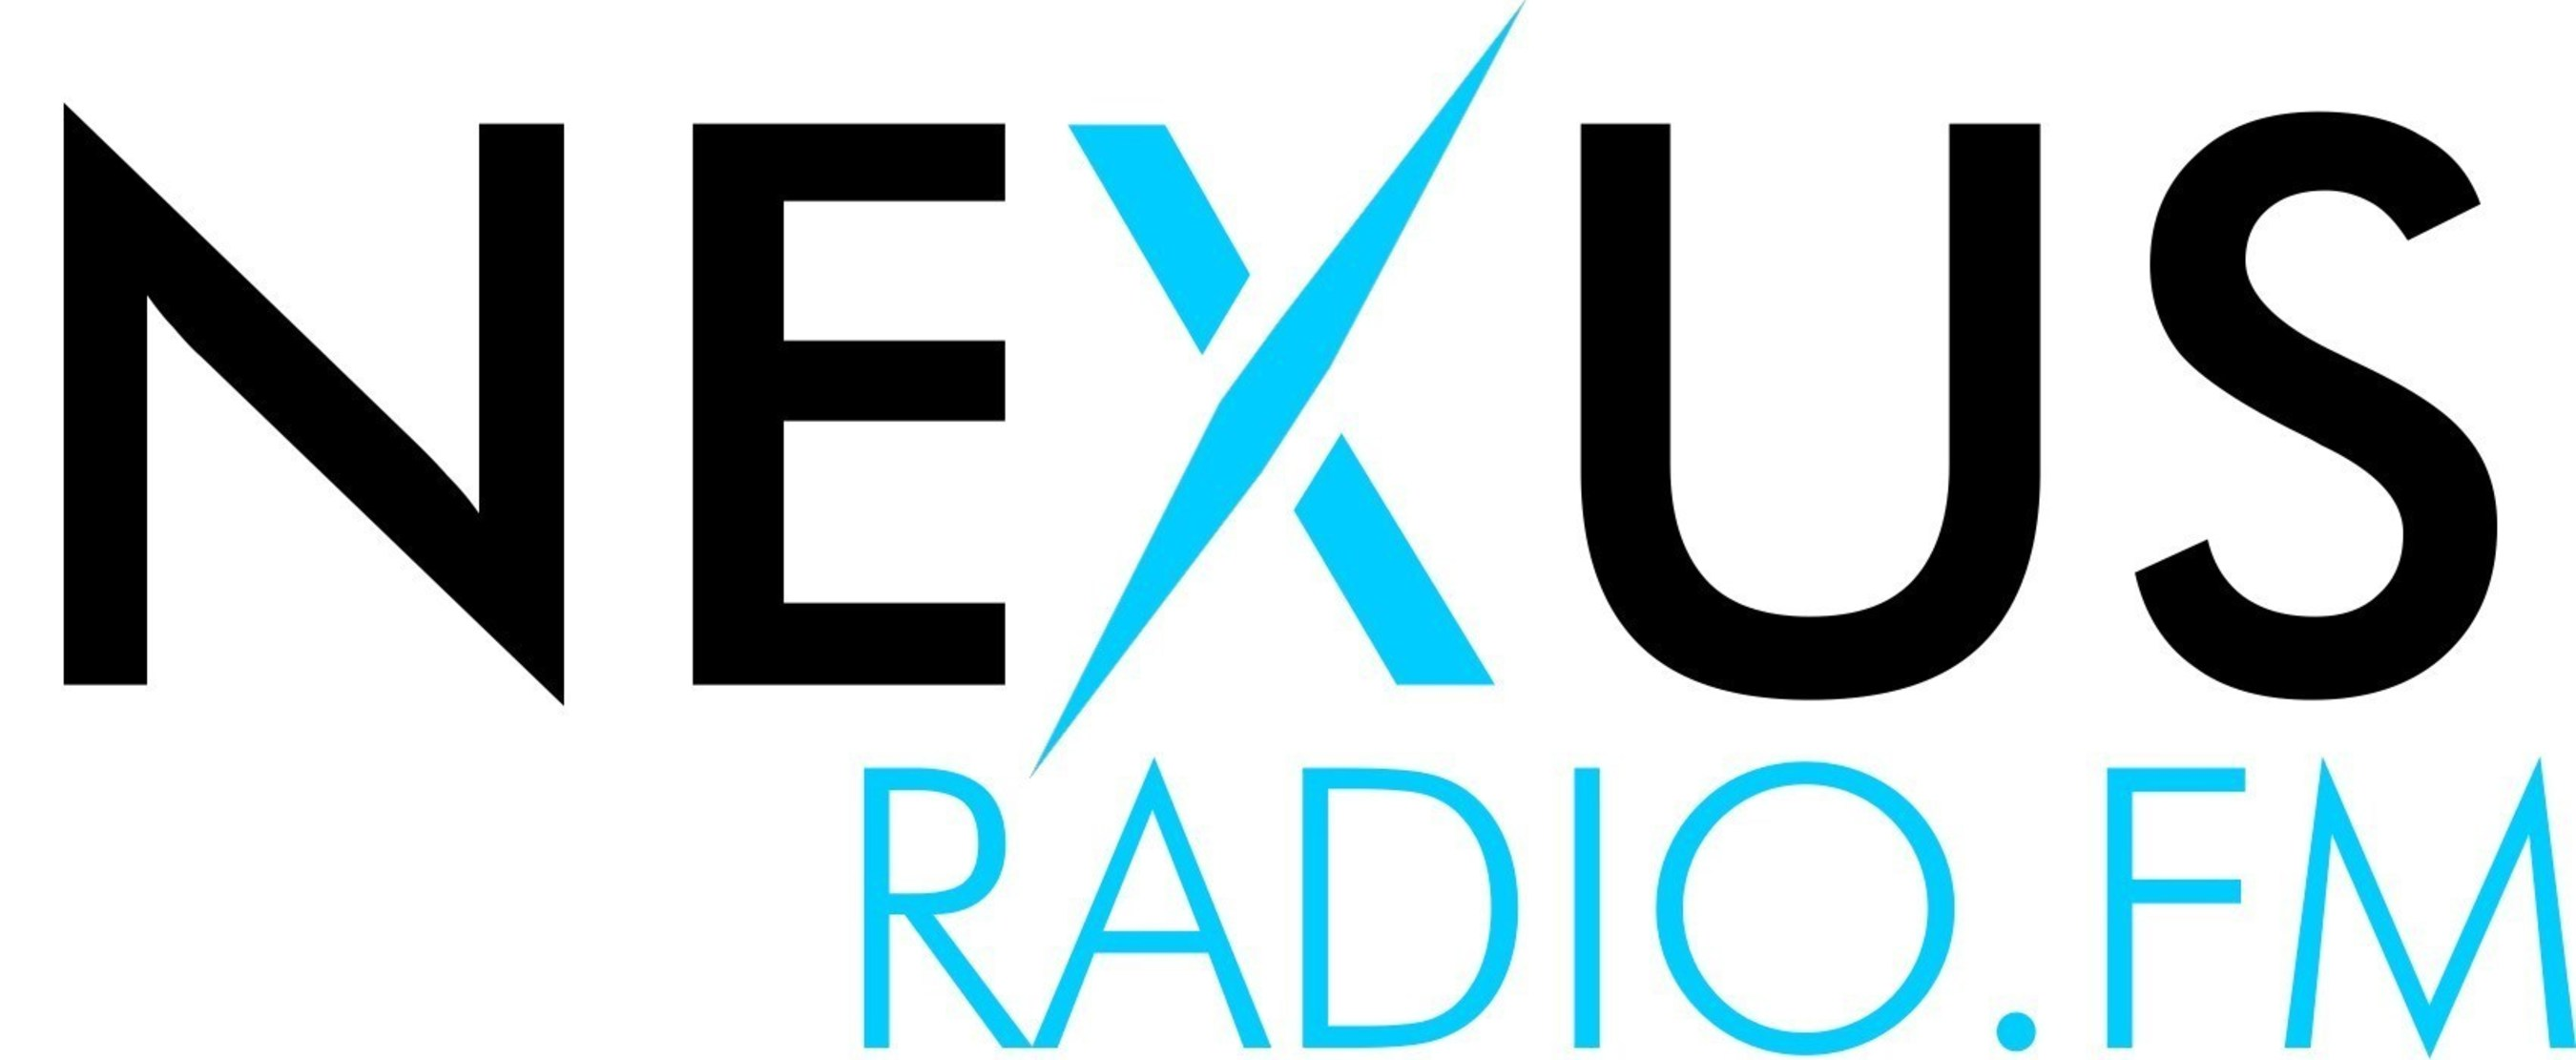 Fusion Rebrands to Nexus Media With a New Marketing Plan to Compete With Apple, Spotify, Pandora